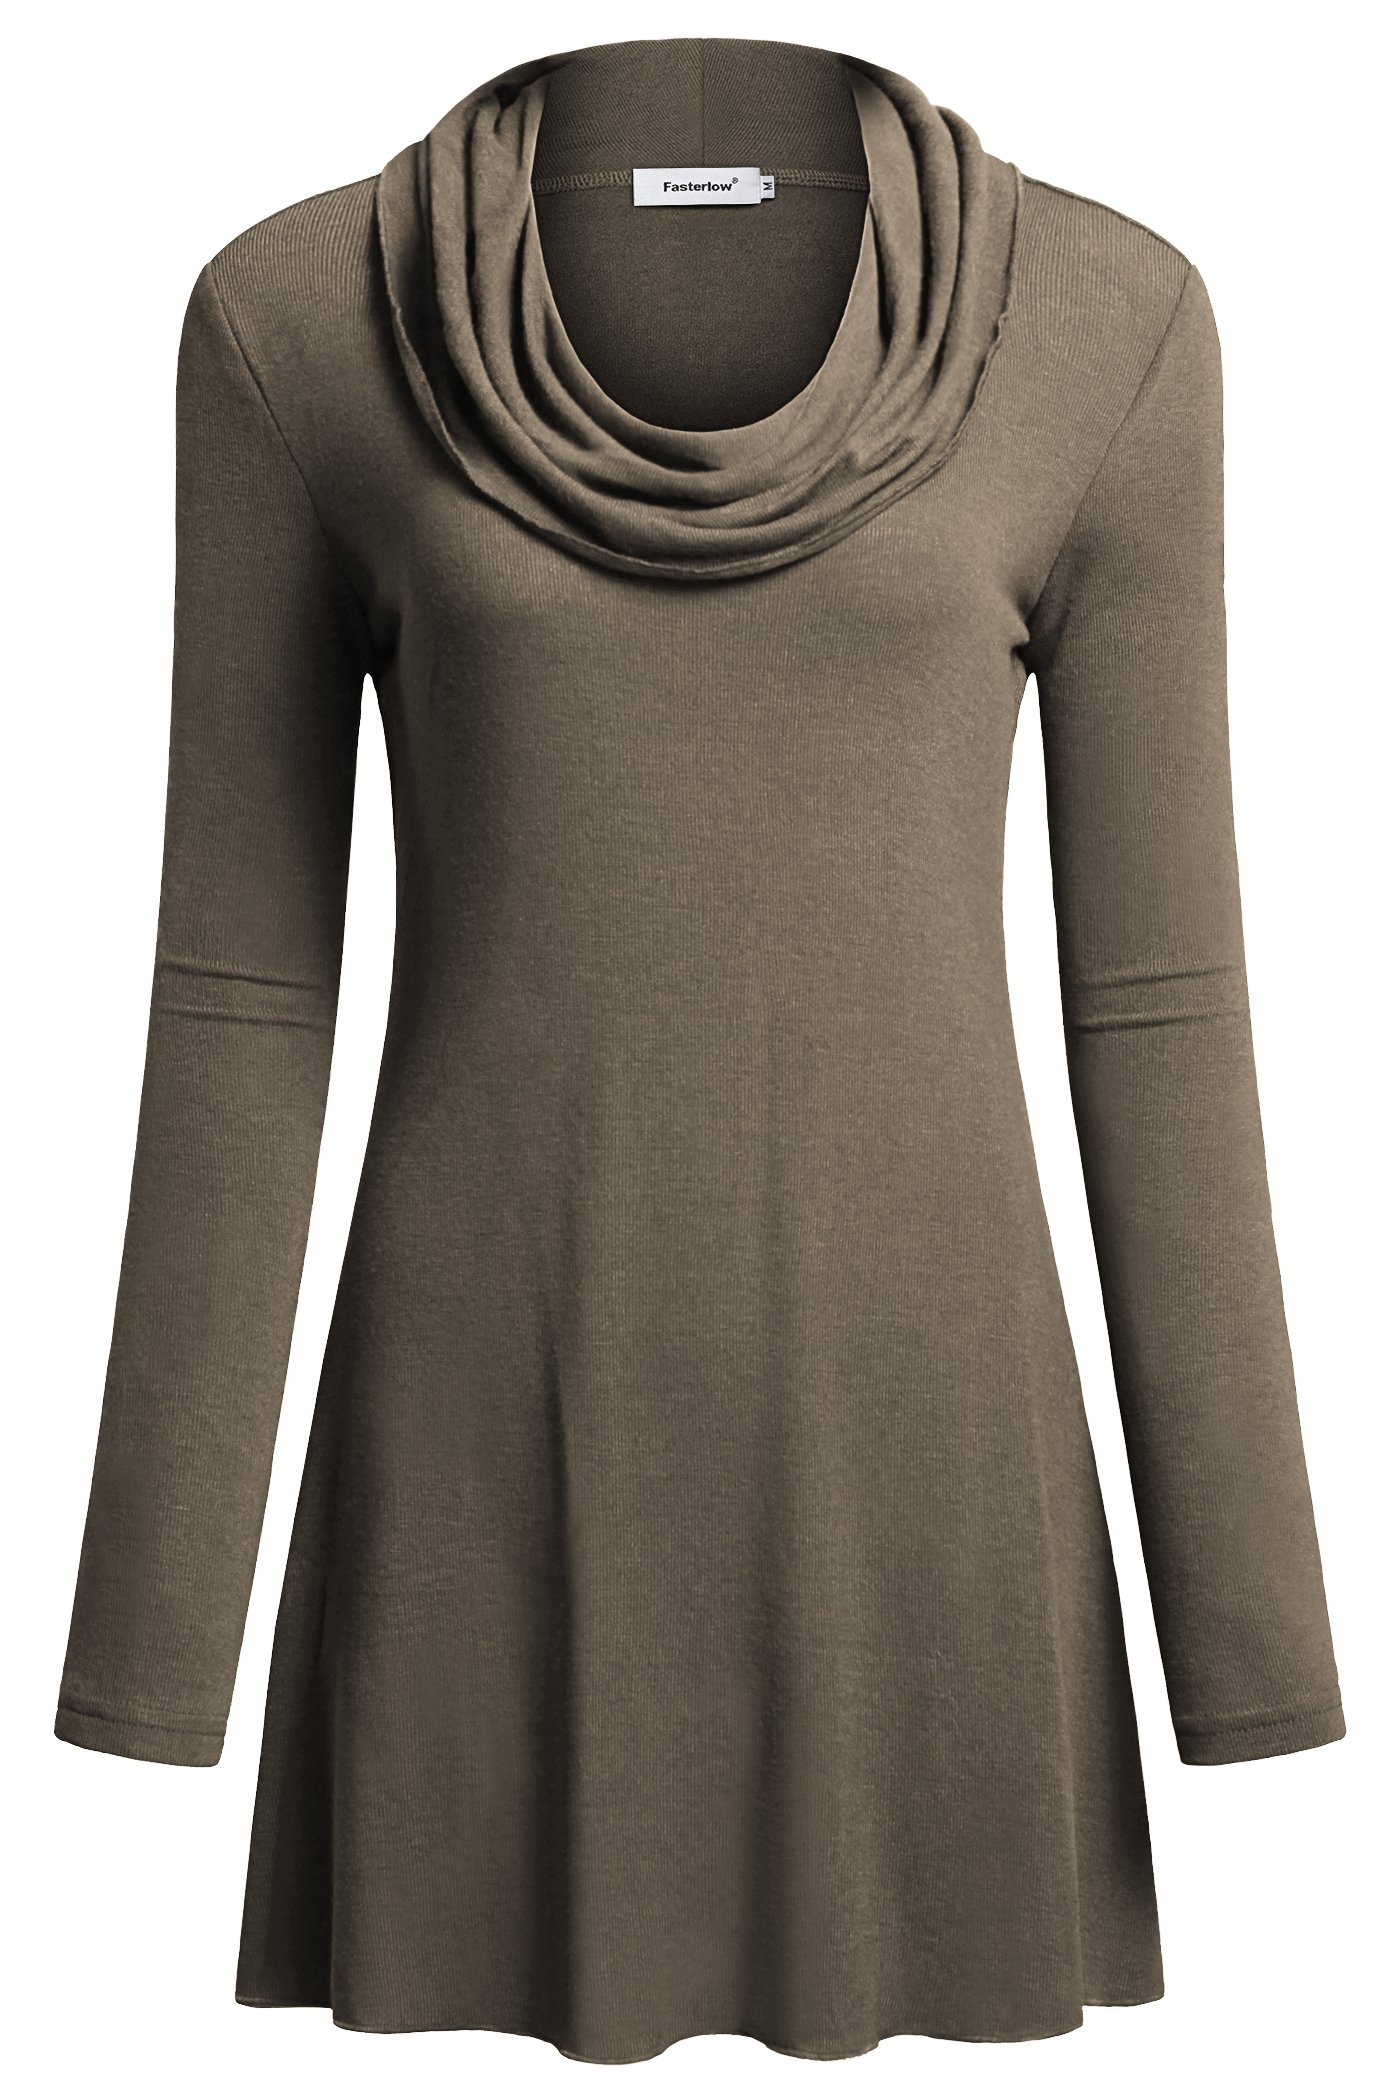 Fasterlow Women Long Sleeve Fall Tunics Cowl Neck Top Flowy Casual Blouse Shirts, Brown, Large